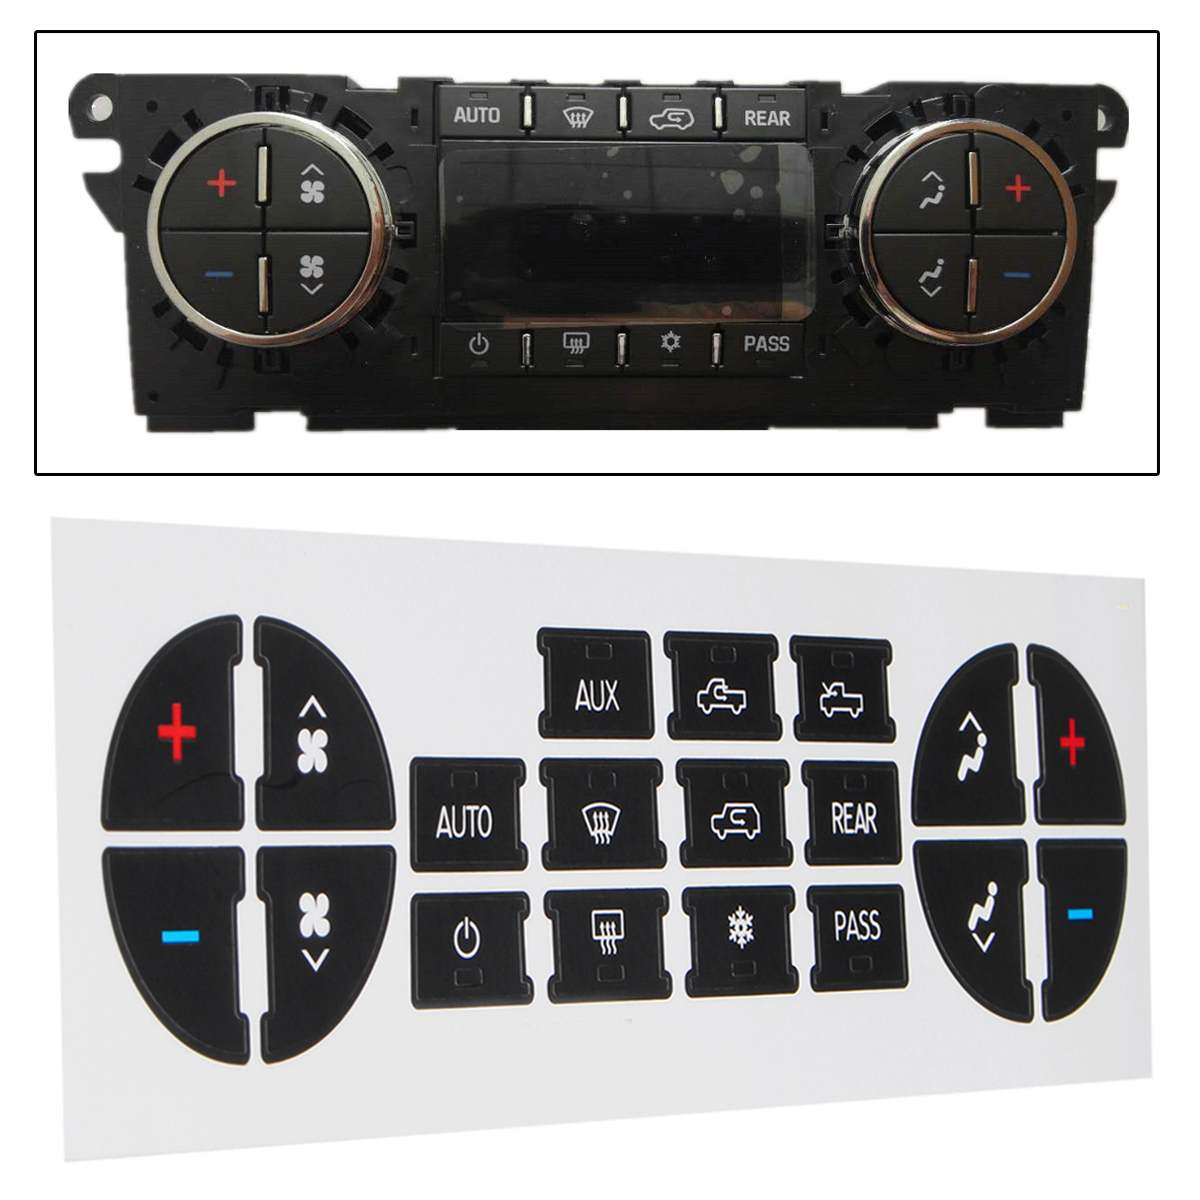 Car AC Dash Button Repair Sticker Decal Kit Dash Replacement 07-13 For Chevrolet For Buick For GMC Vehicles Car Decal Stickers